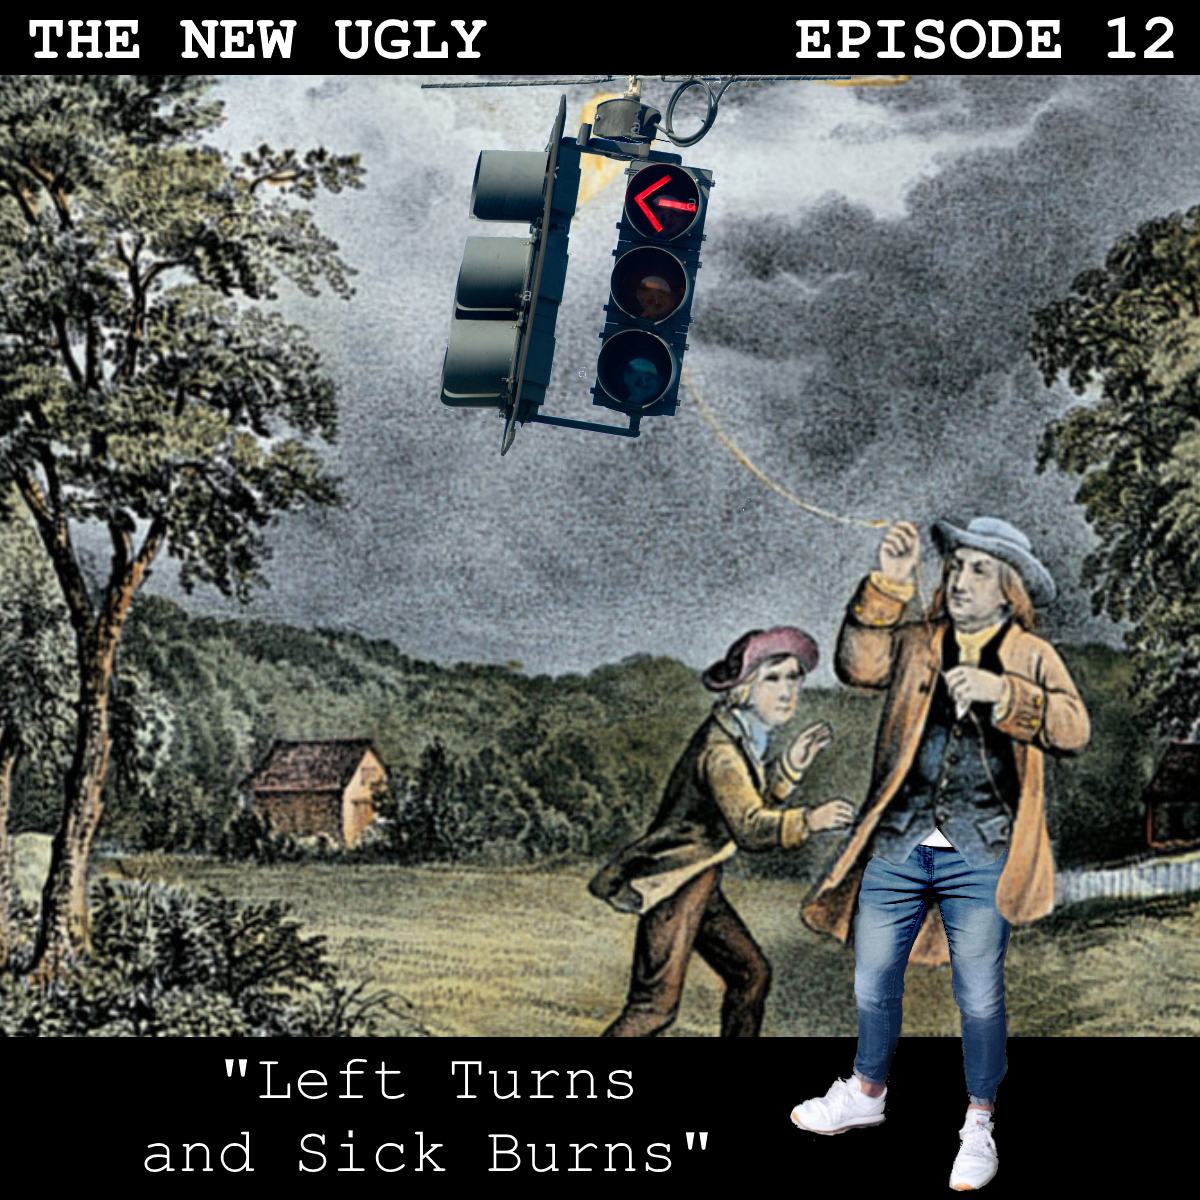 Episode 12: Left Turns and Sick Burns